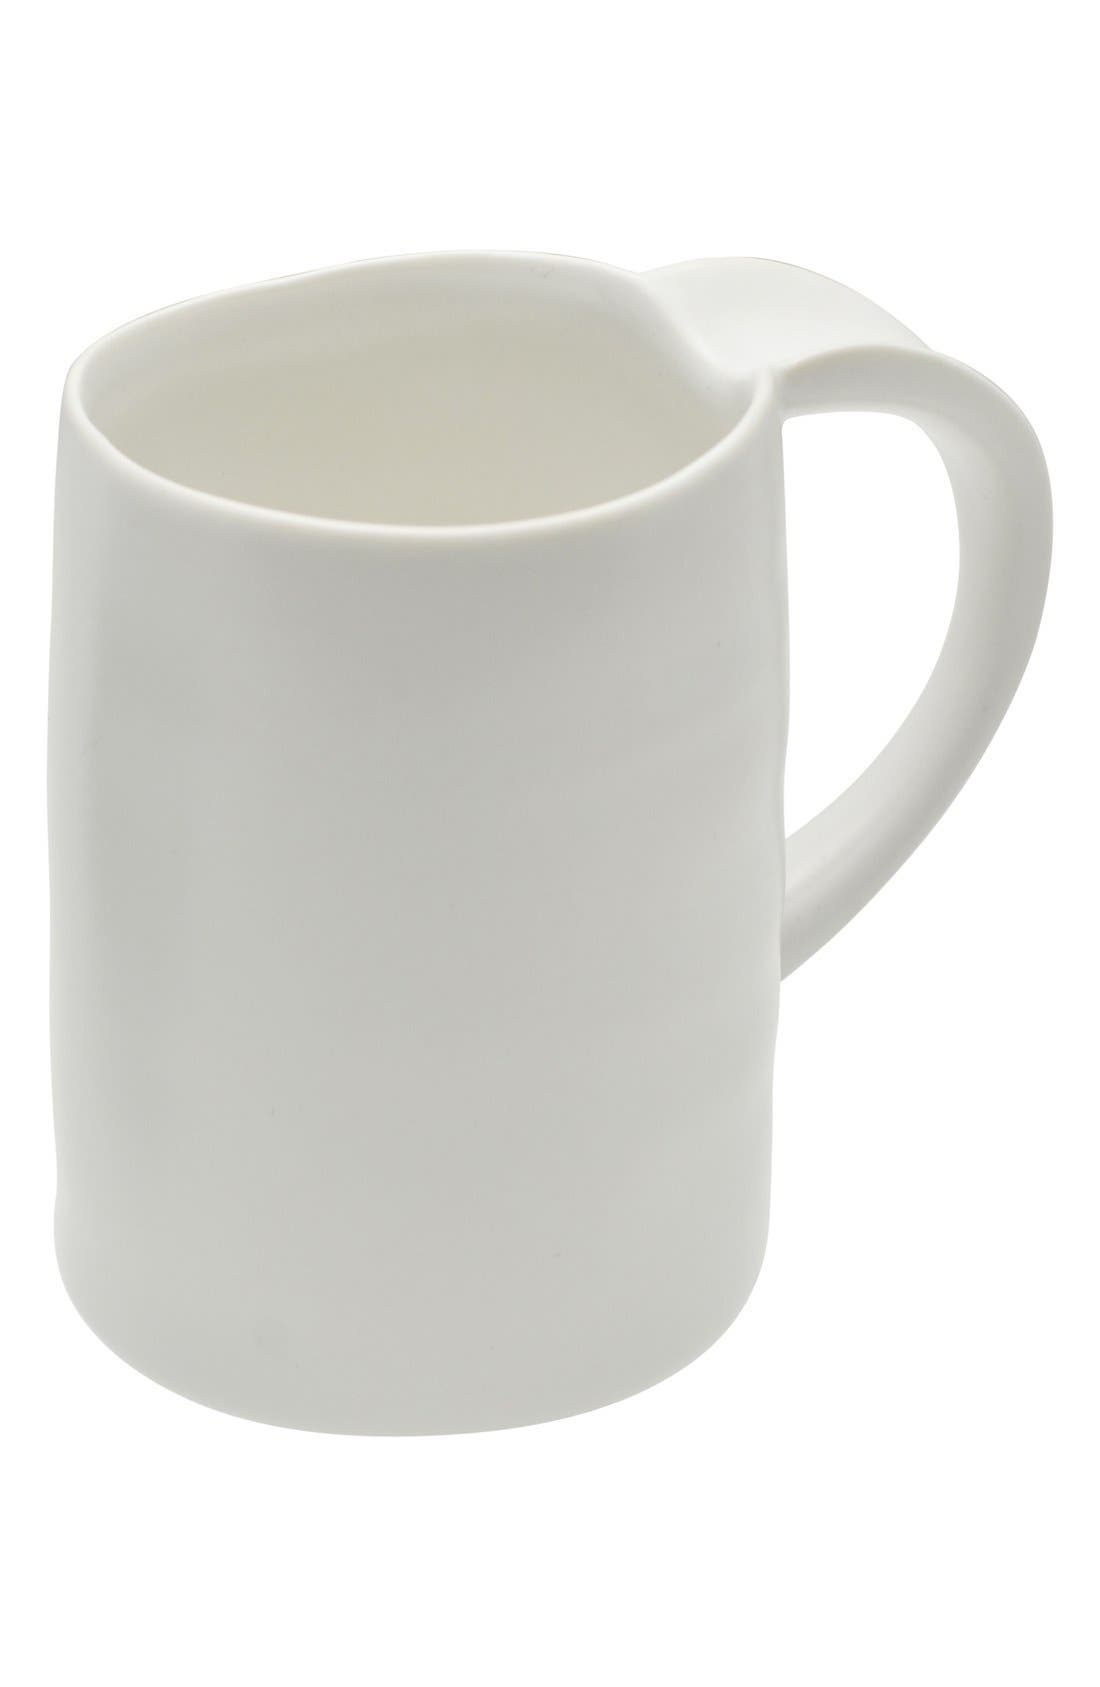 Alternate Image 1 Selected - 10 Strawberry Street 'Ripple' Porcelain Mugs (Set of 6)